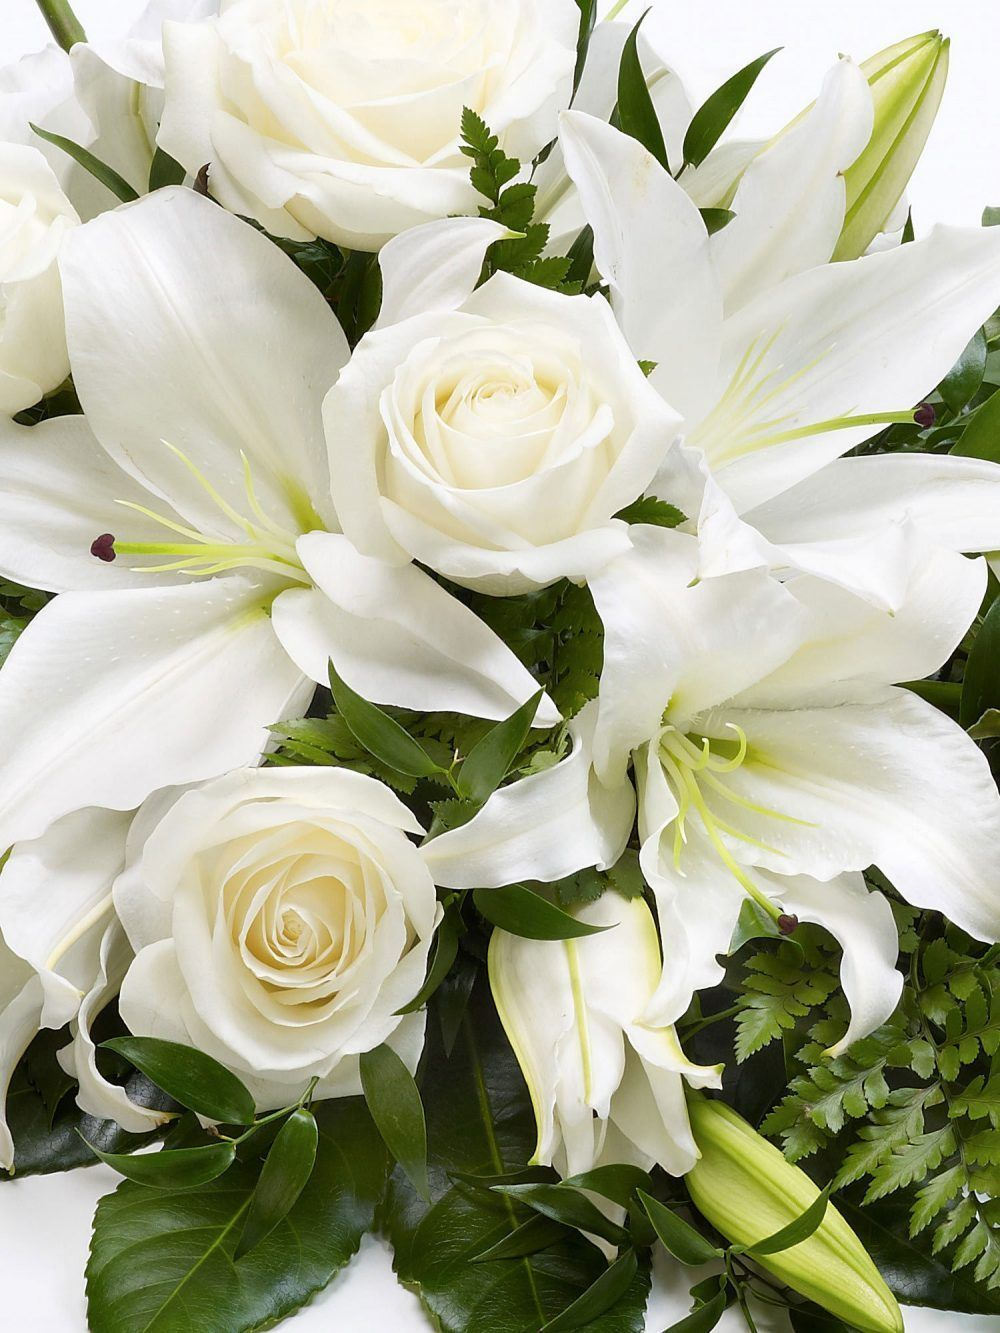 Rose And Lily Spray White 1